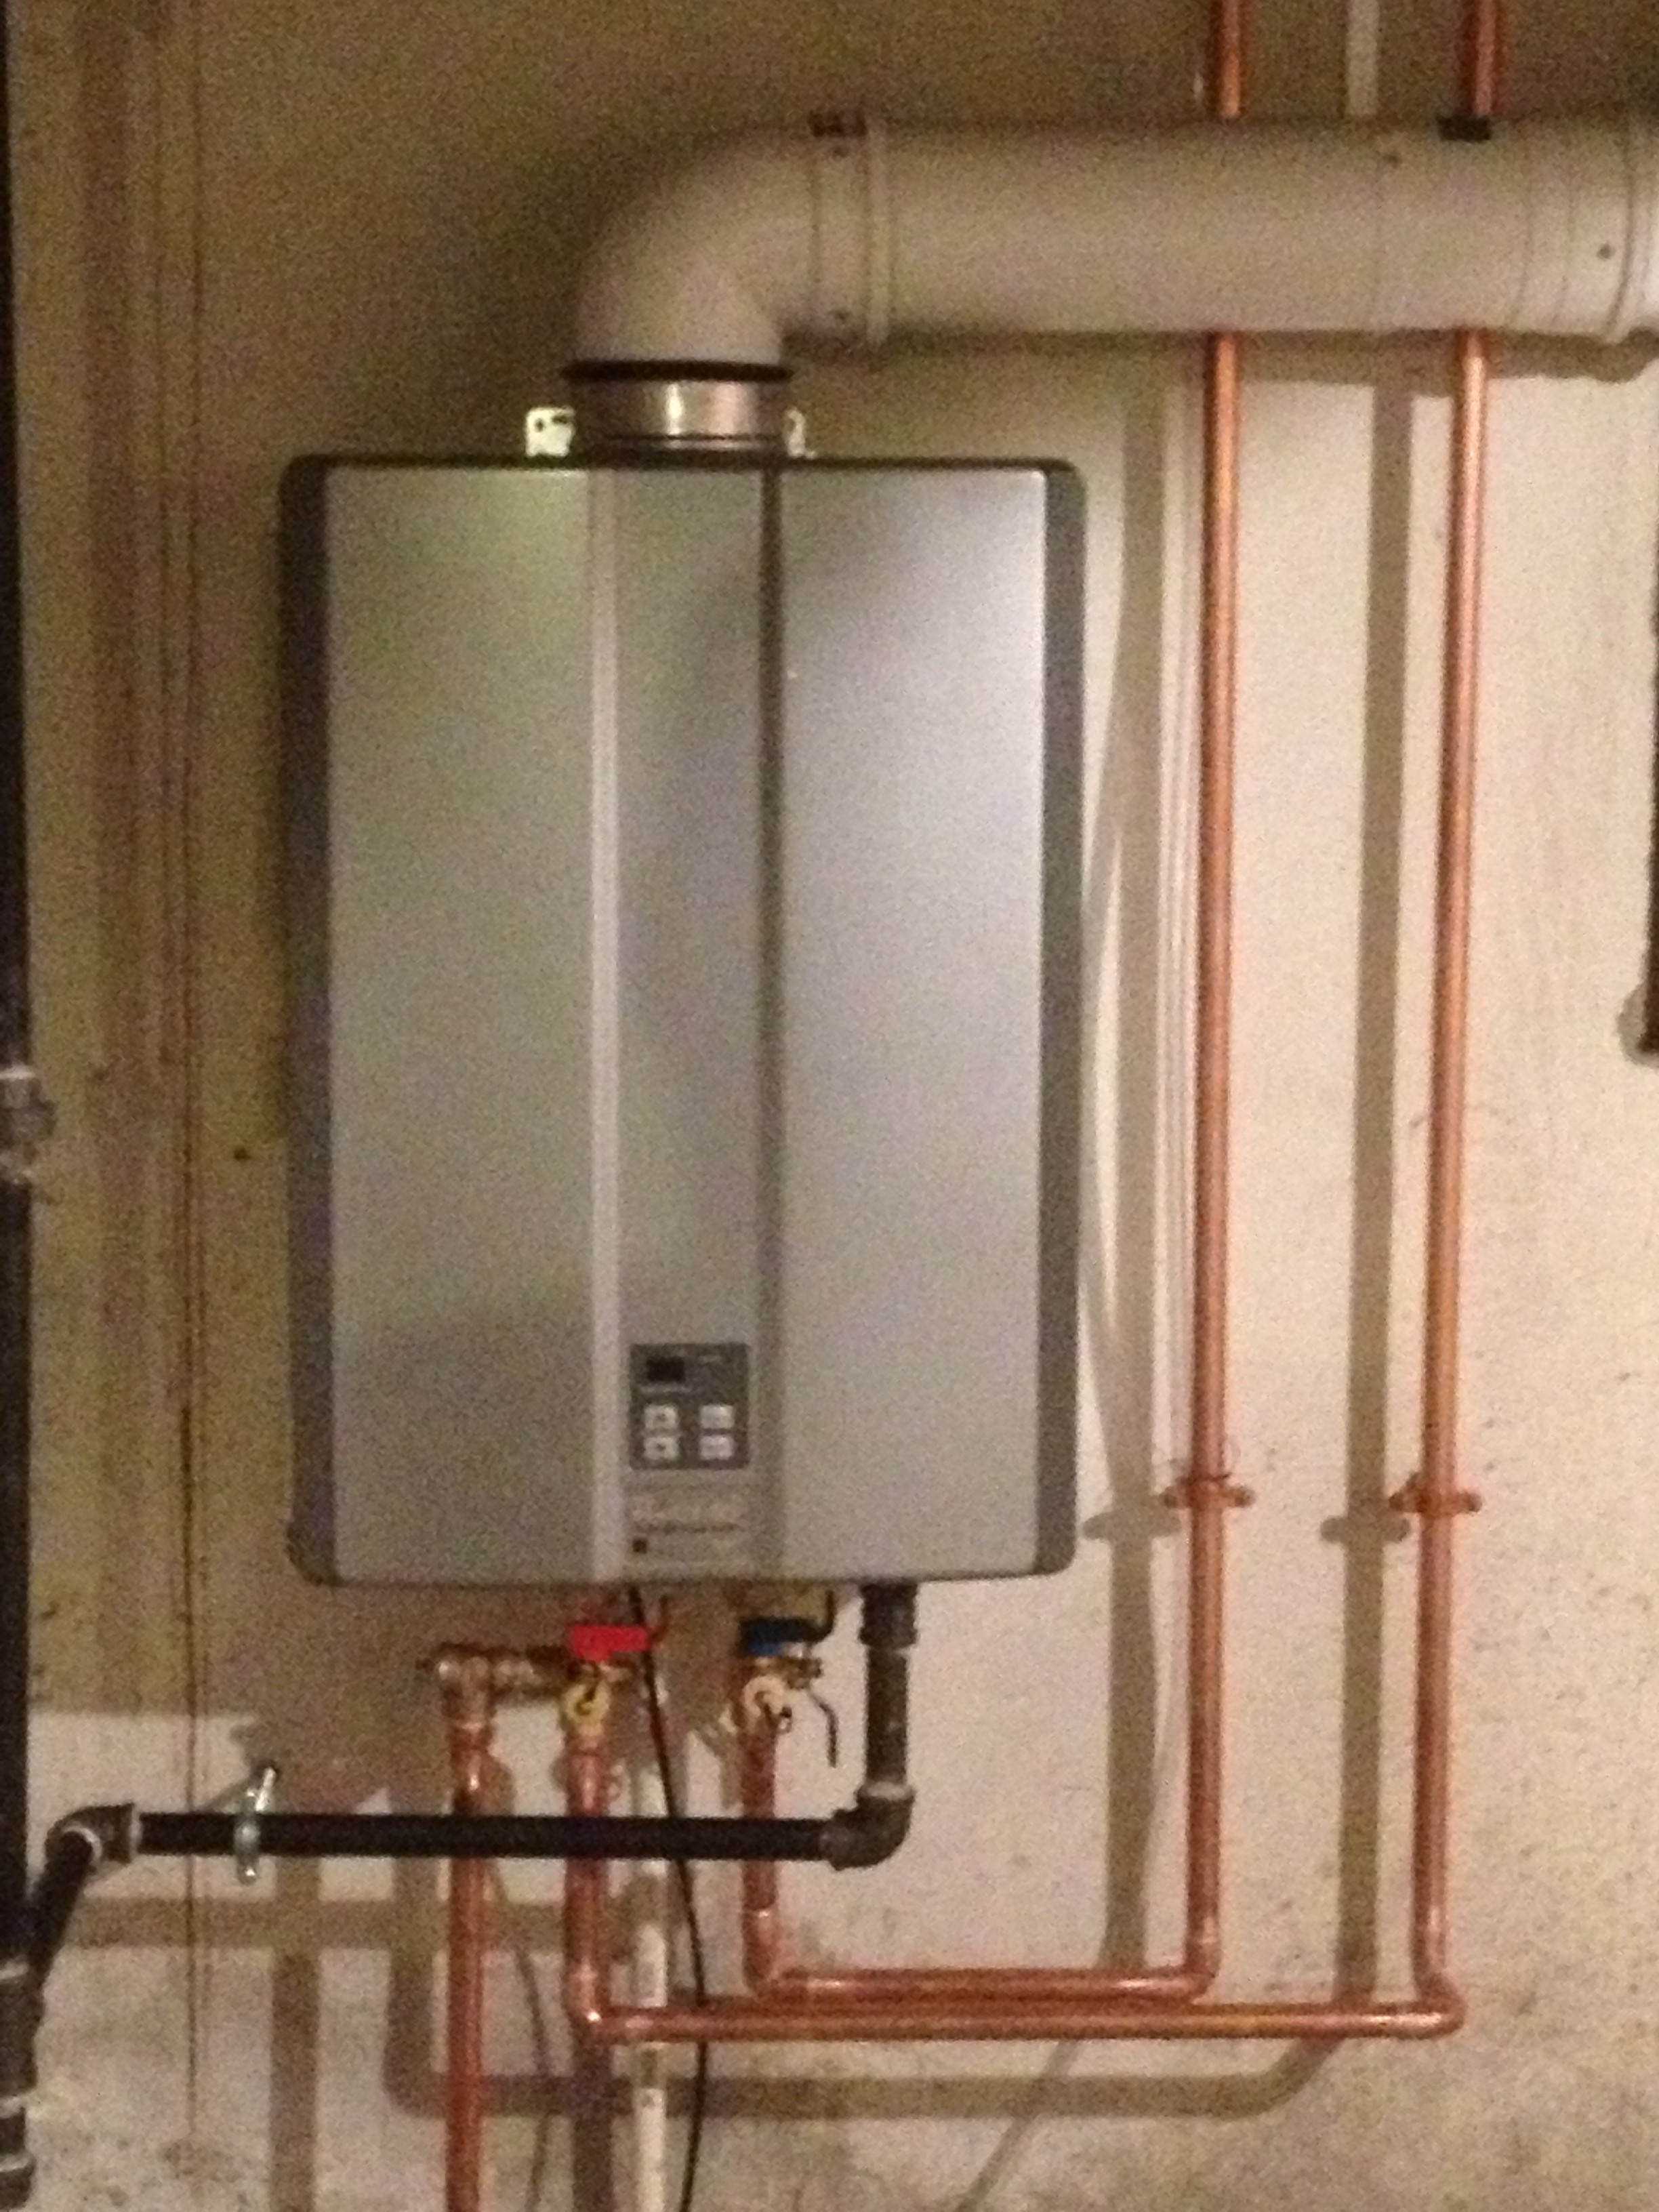 How to vent a hot water heater - New Rinnai Hot Water Tank In Framingham Ma